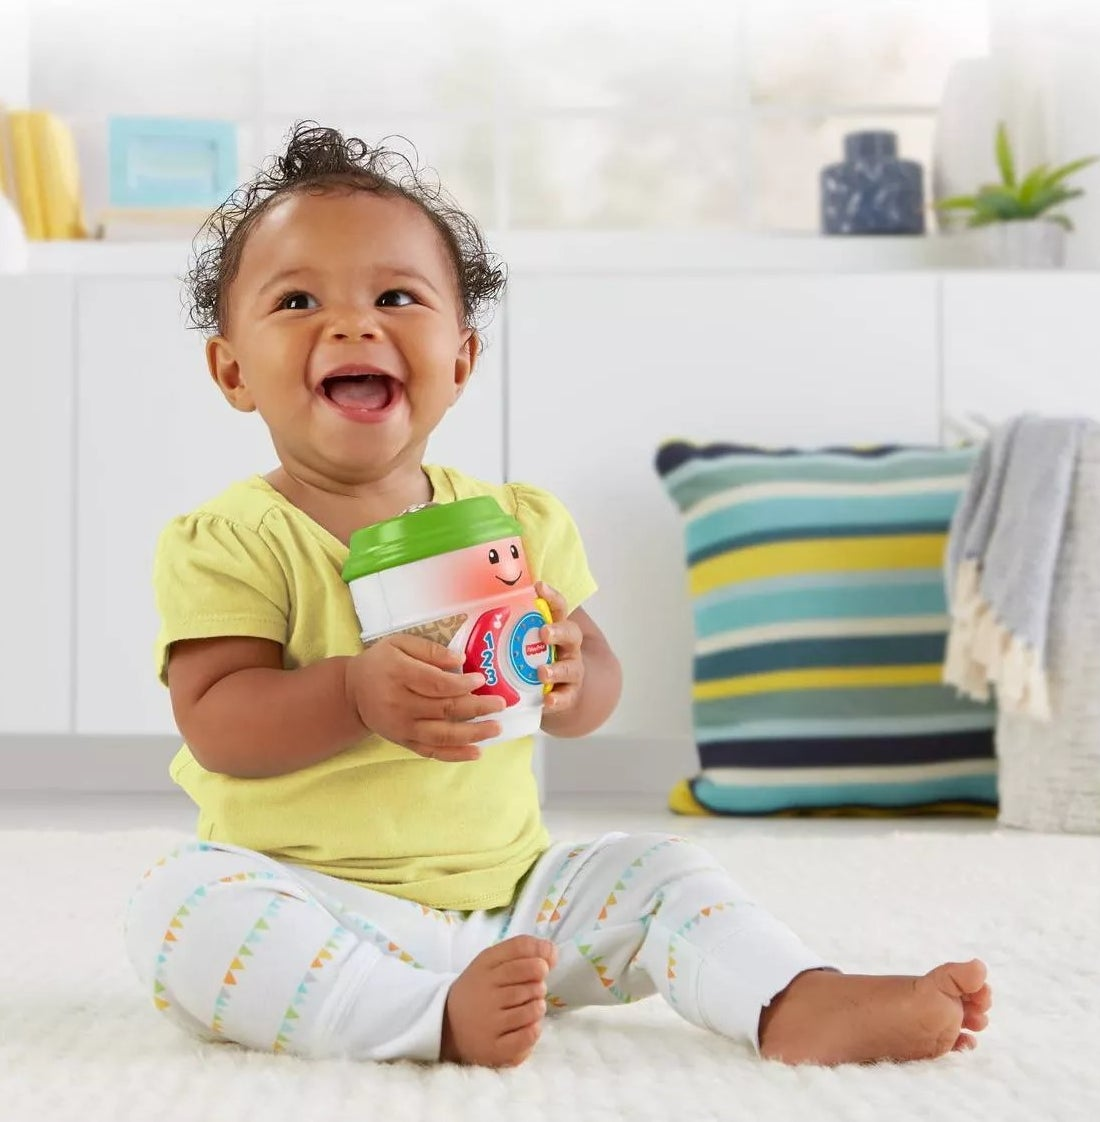 A baby playing with the coffee cup toy